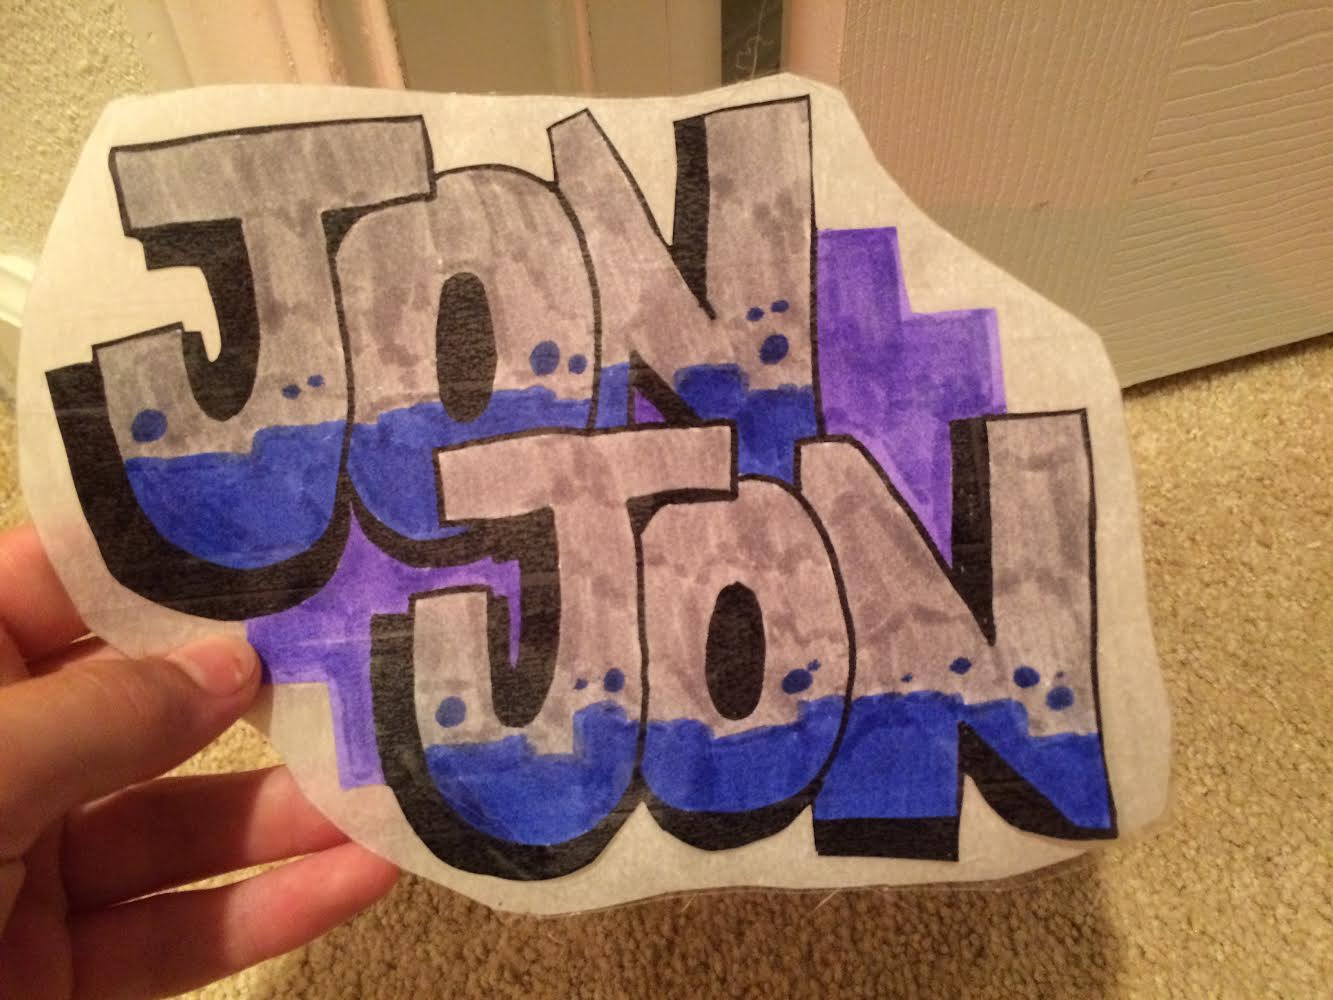 I will make your name or word into graffiti art